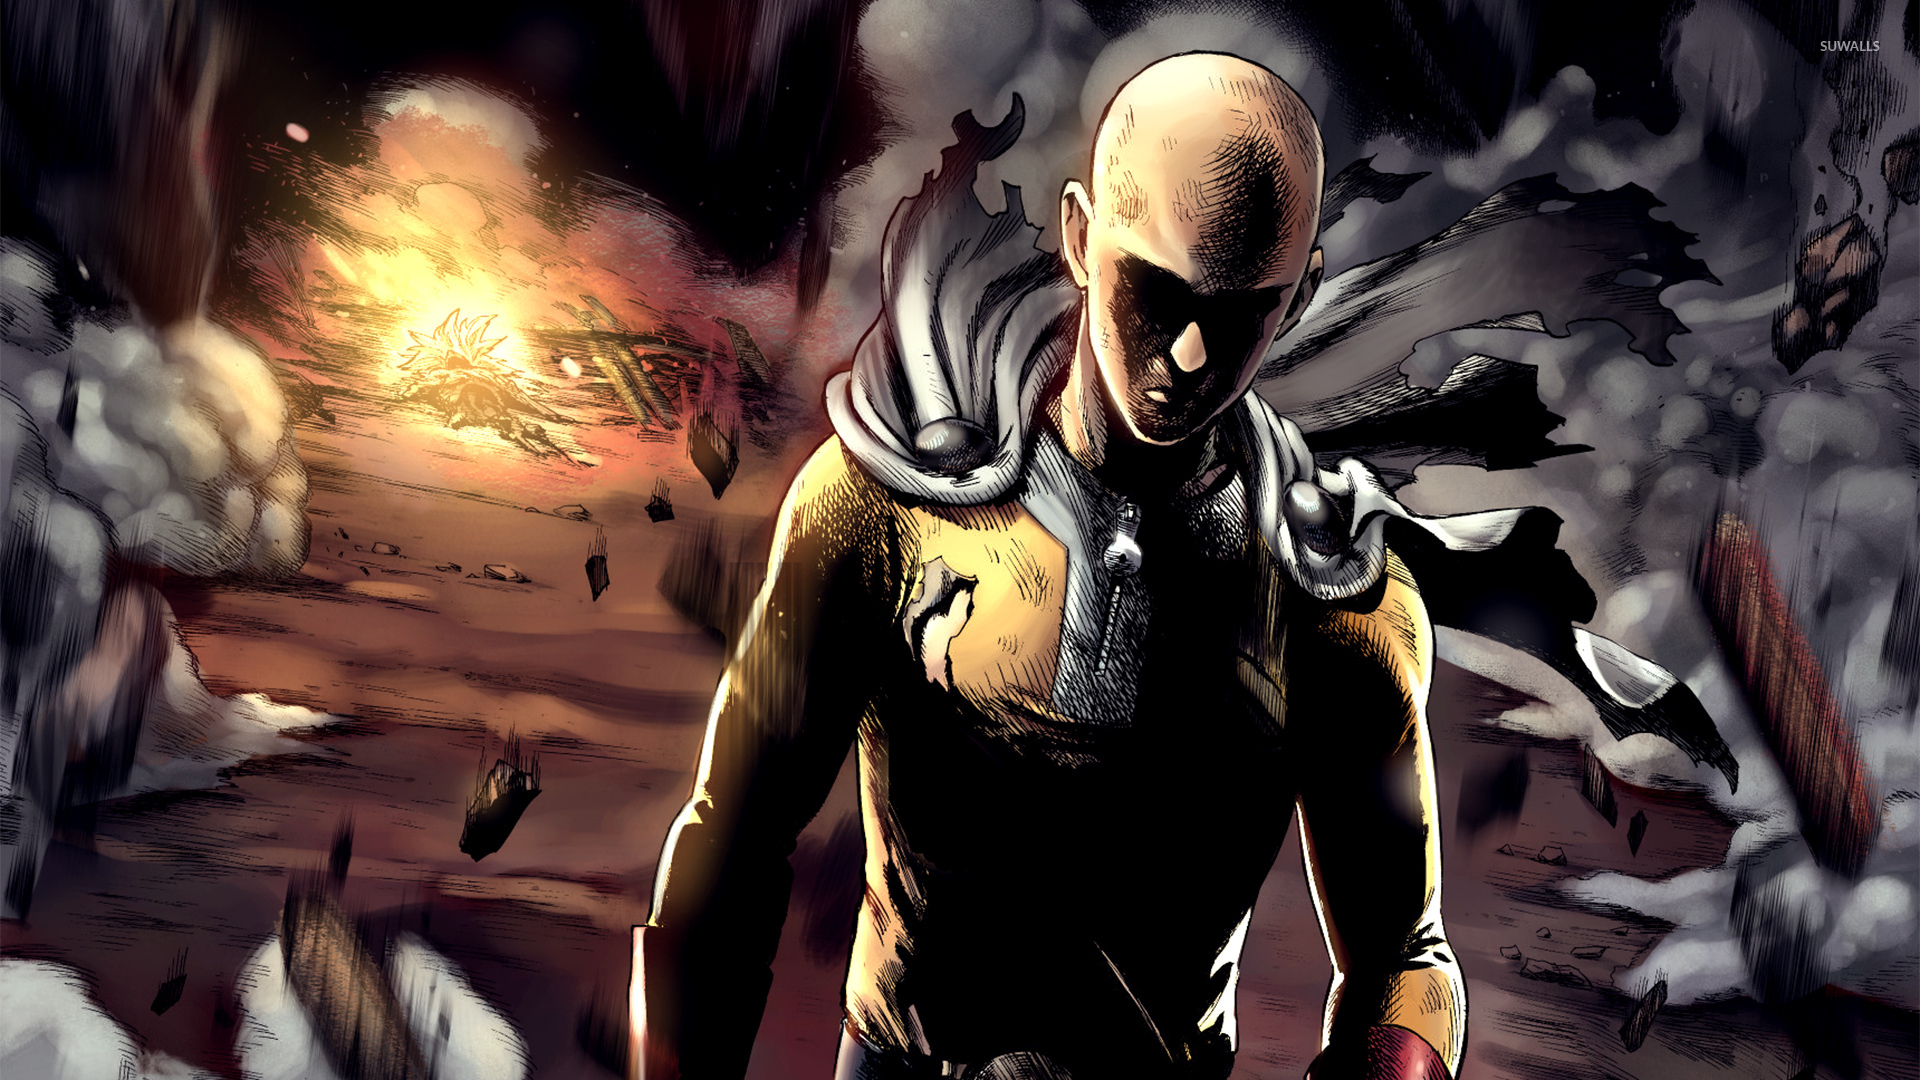 Saitama In An Explosion One Punch Man Wallpaper Anime